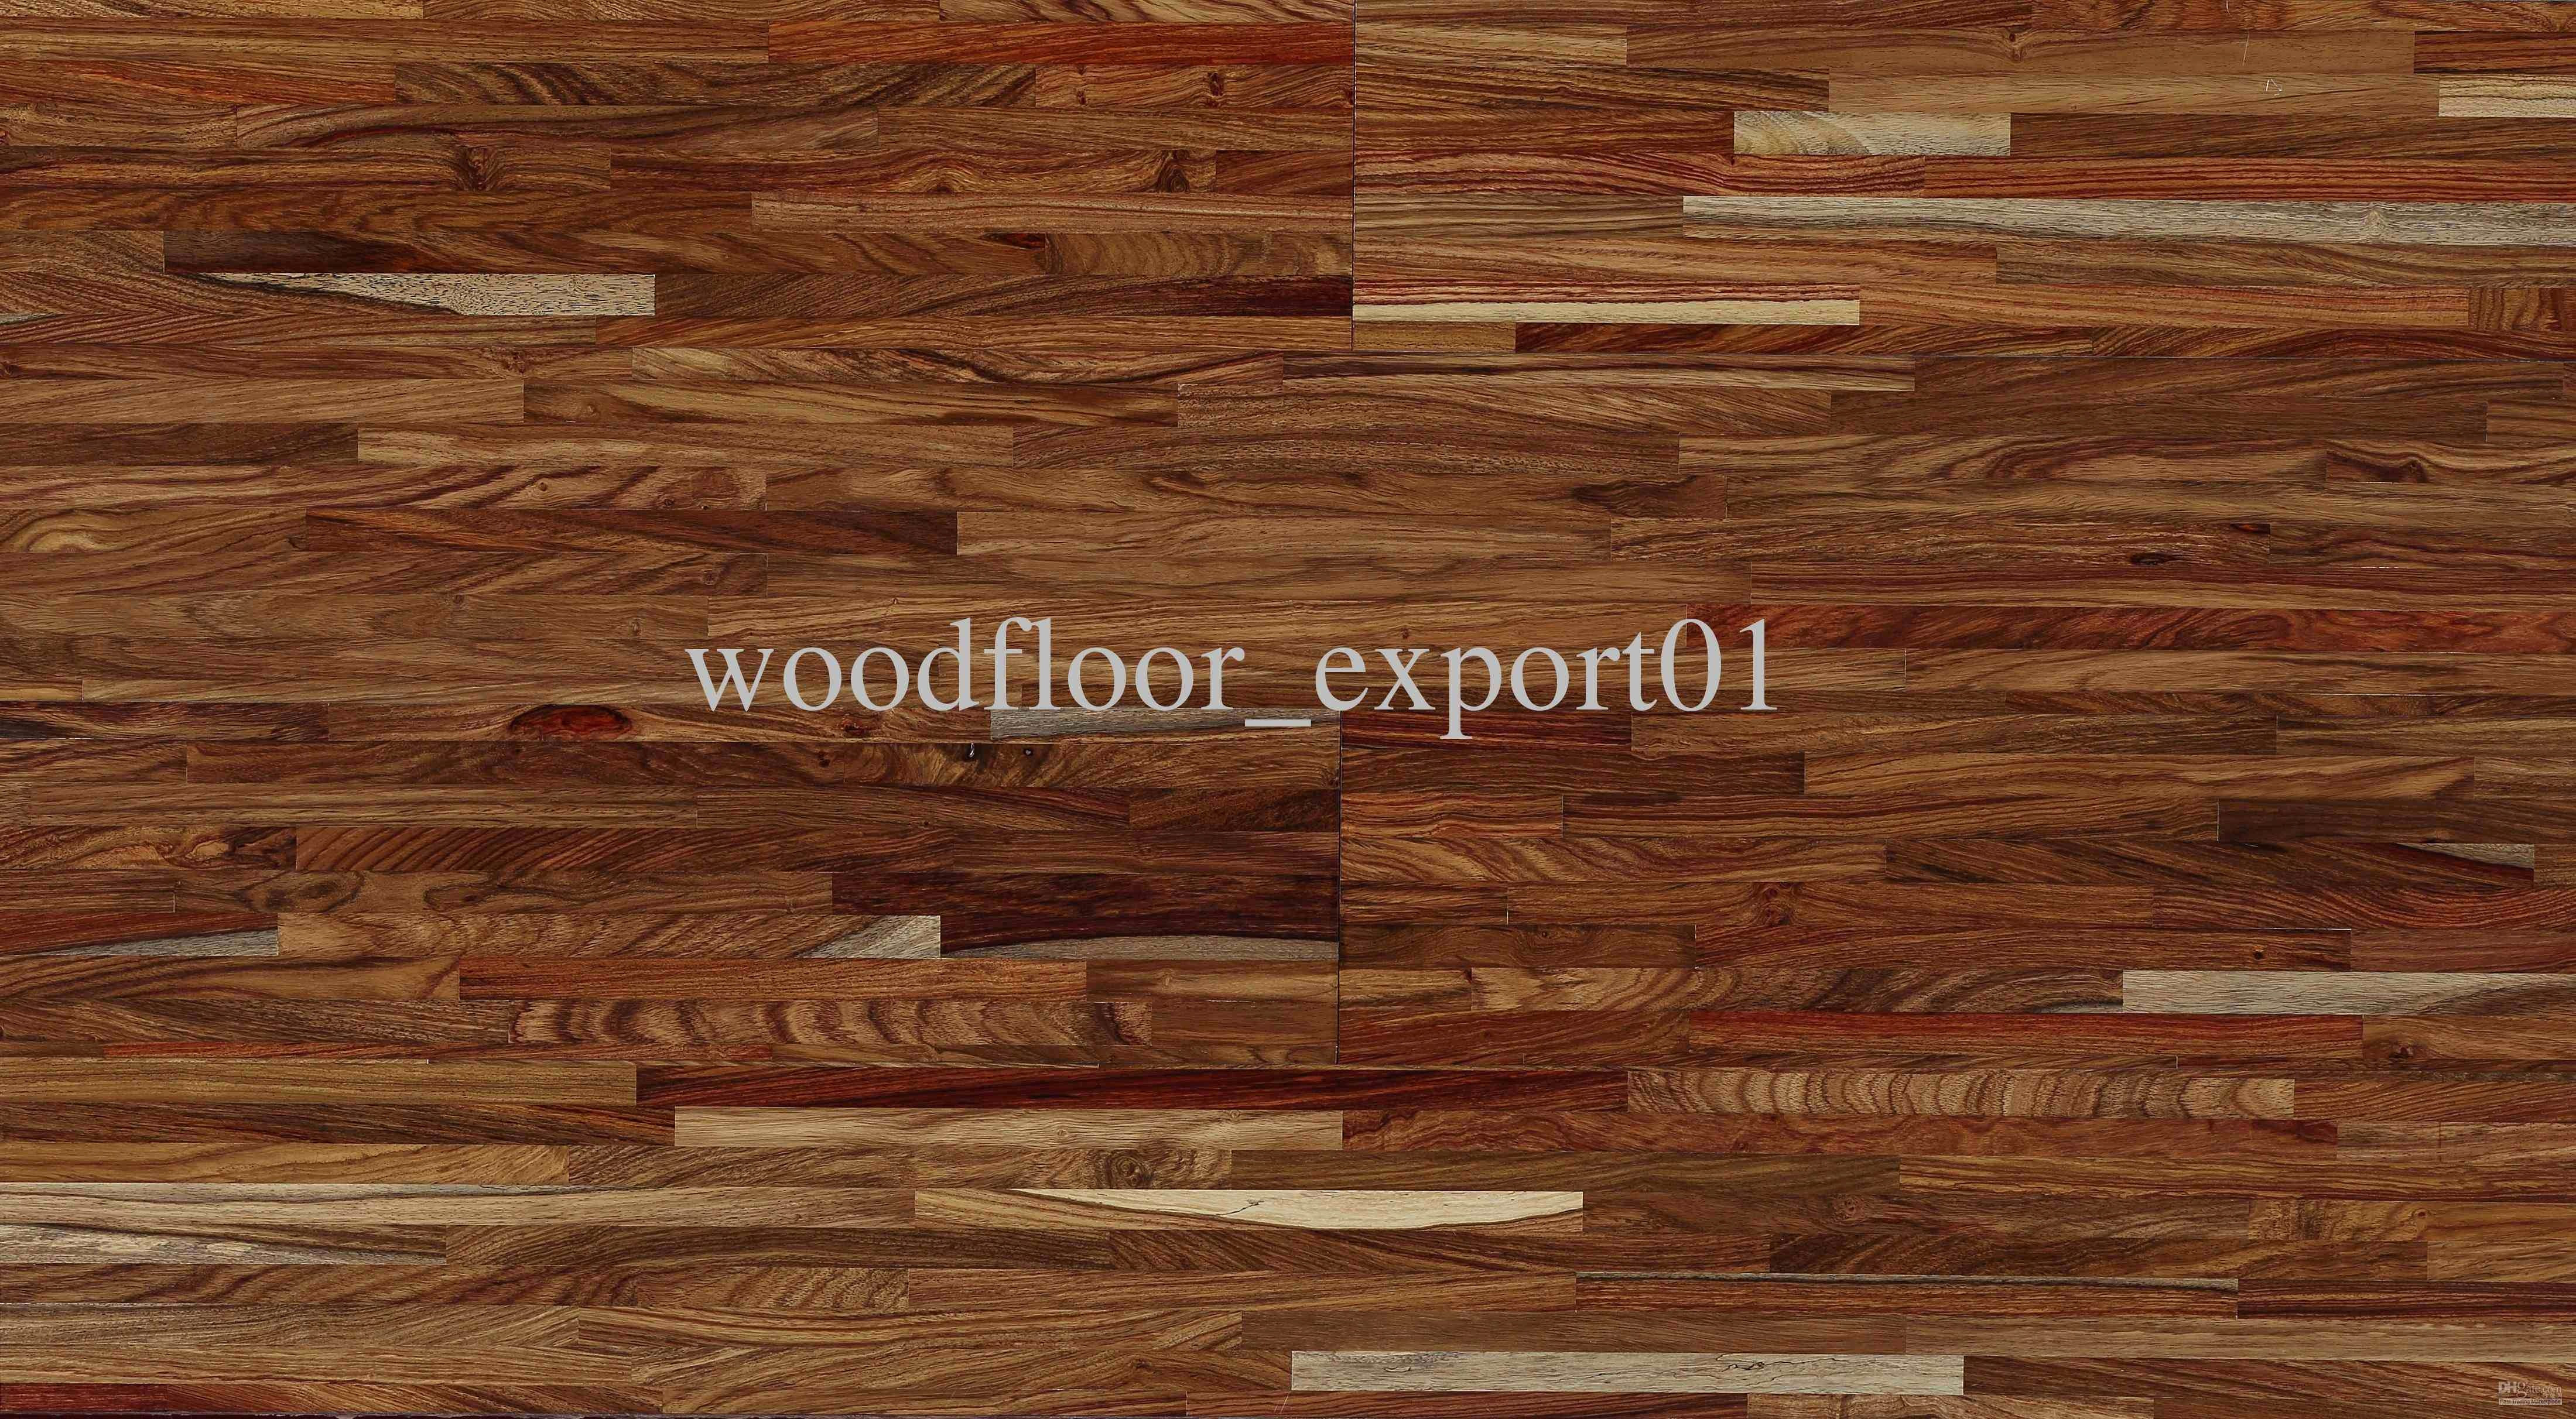 Hardwood Floor Transition to Stairs Of 15 Unique Types Of Hardwood Flooring Image Dizpos Com Intended for Types Of Hardwood Flooring Awesome 50 Inspirational Sanding and Refinishing Hardwood Floors Graphics Image Of 15